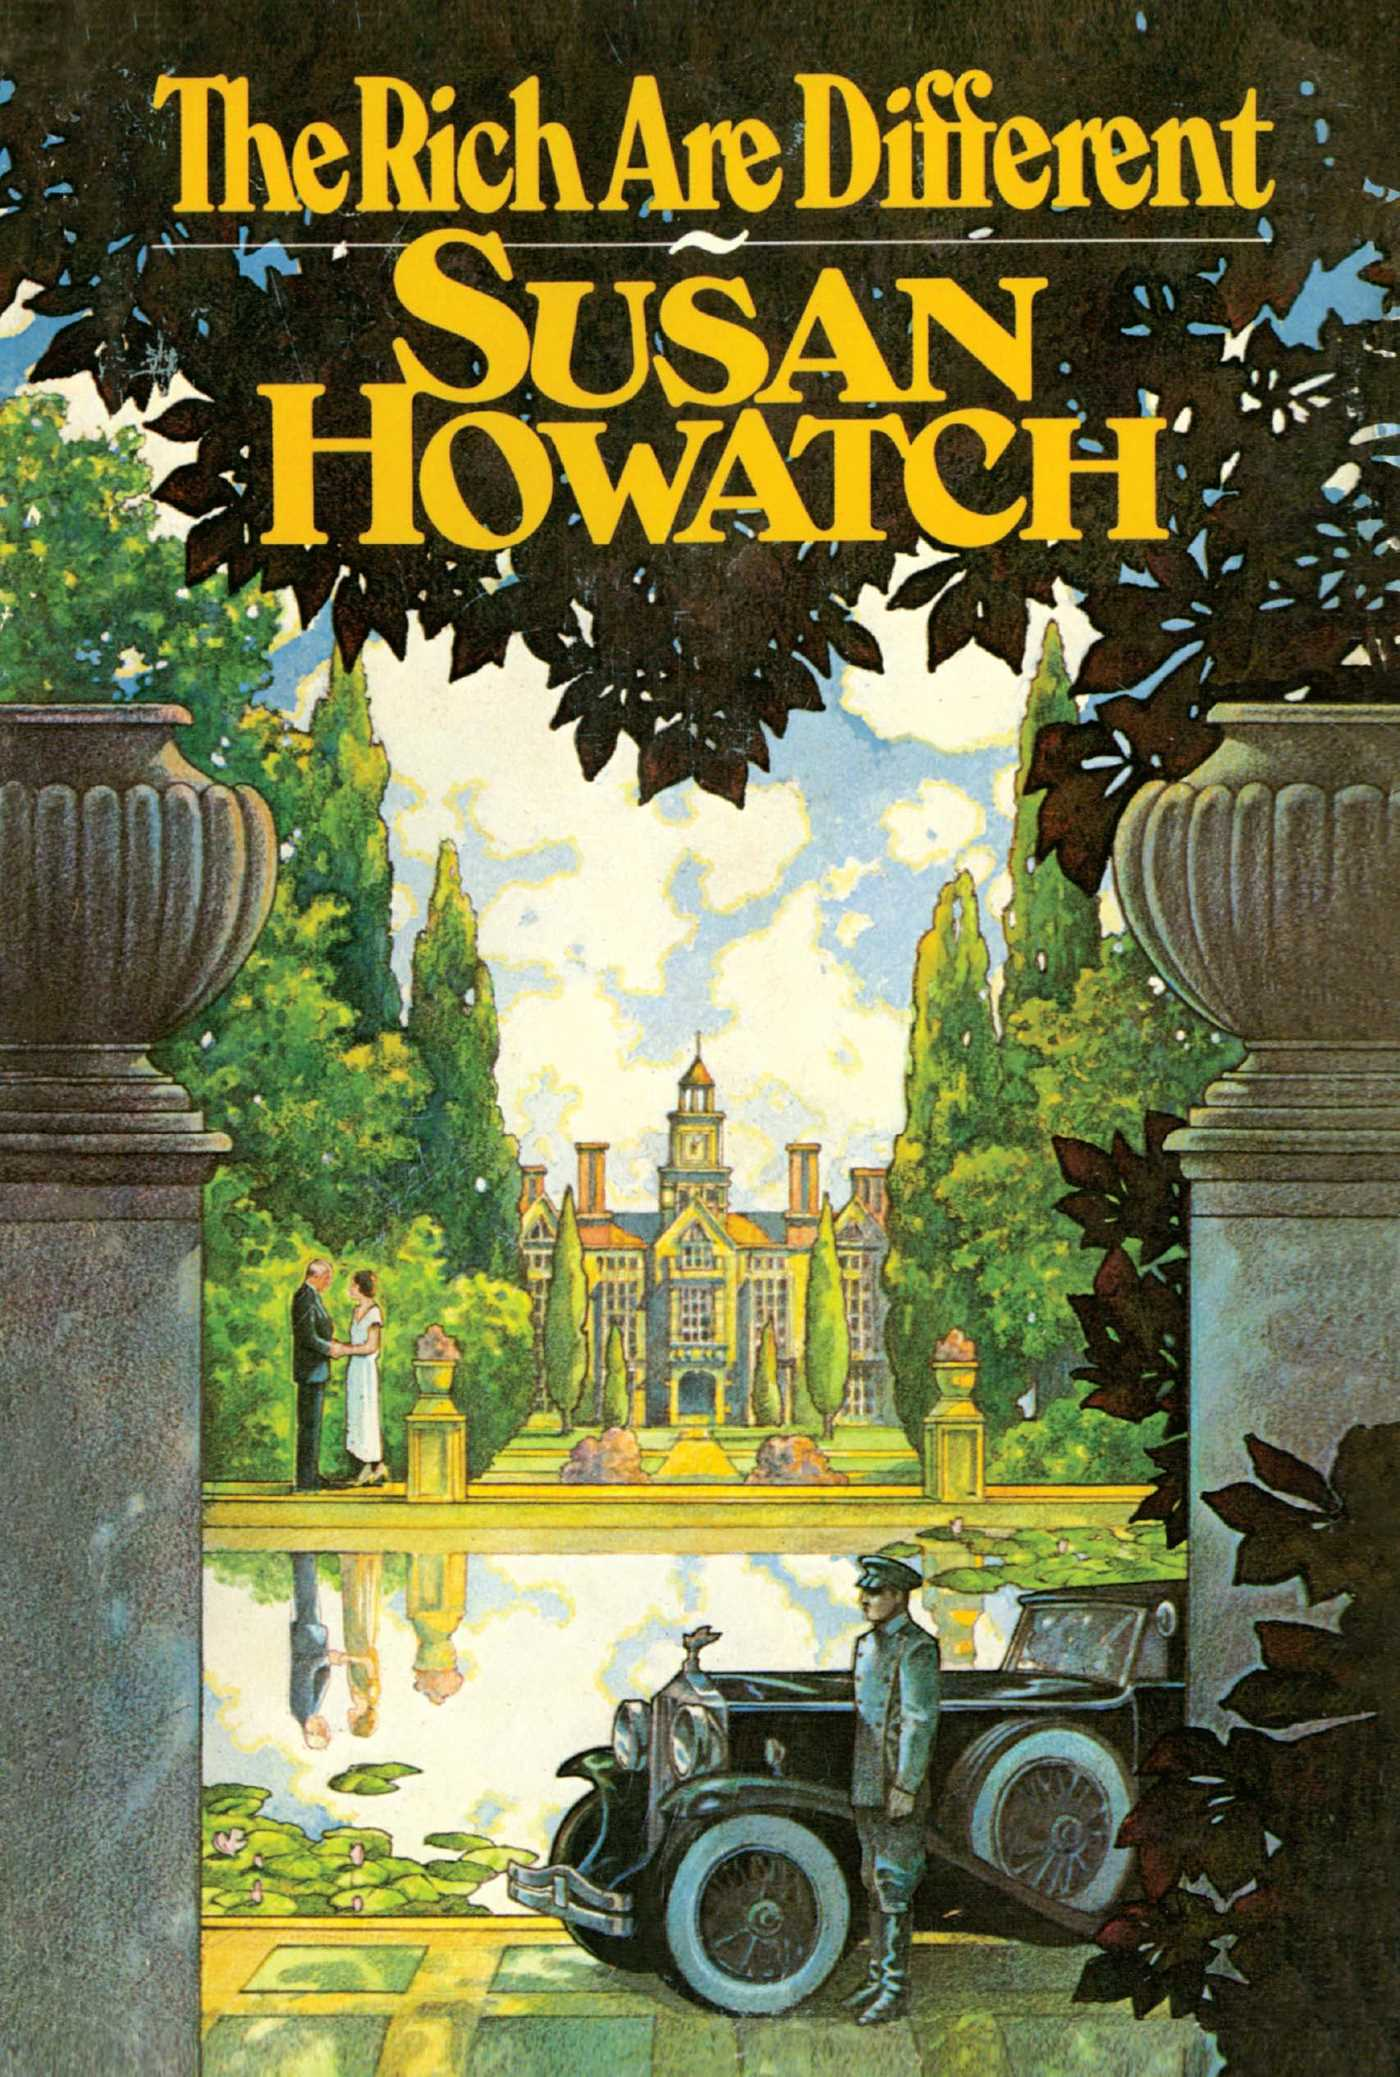 Books by Susan Howatch